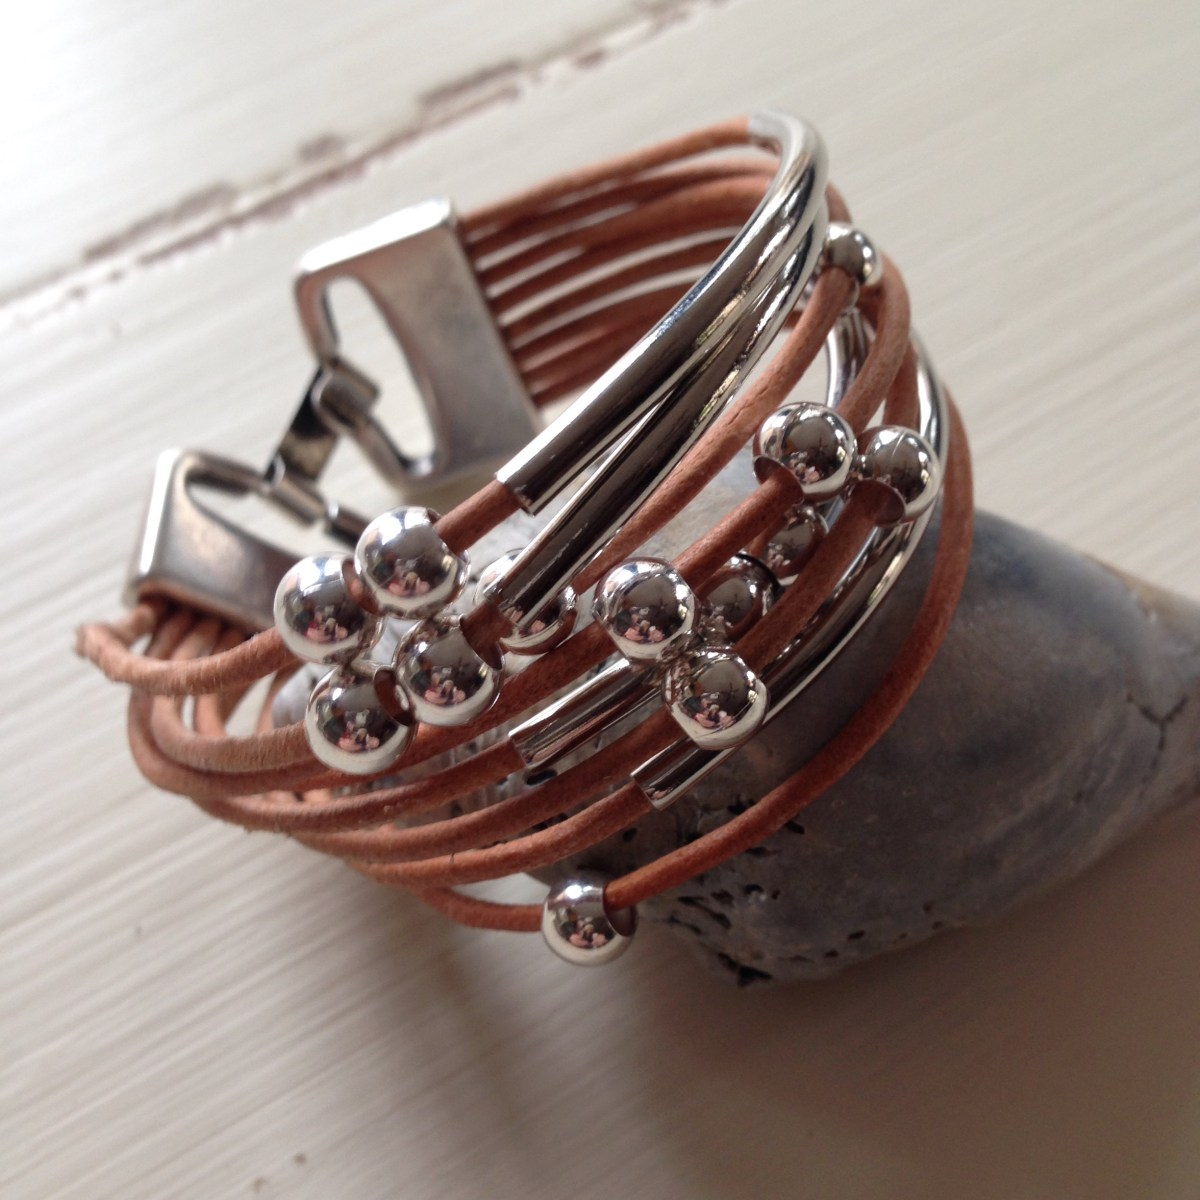 Silver Beads Plus Bars Natural Brown Leather Bracelet